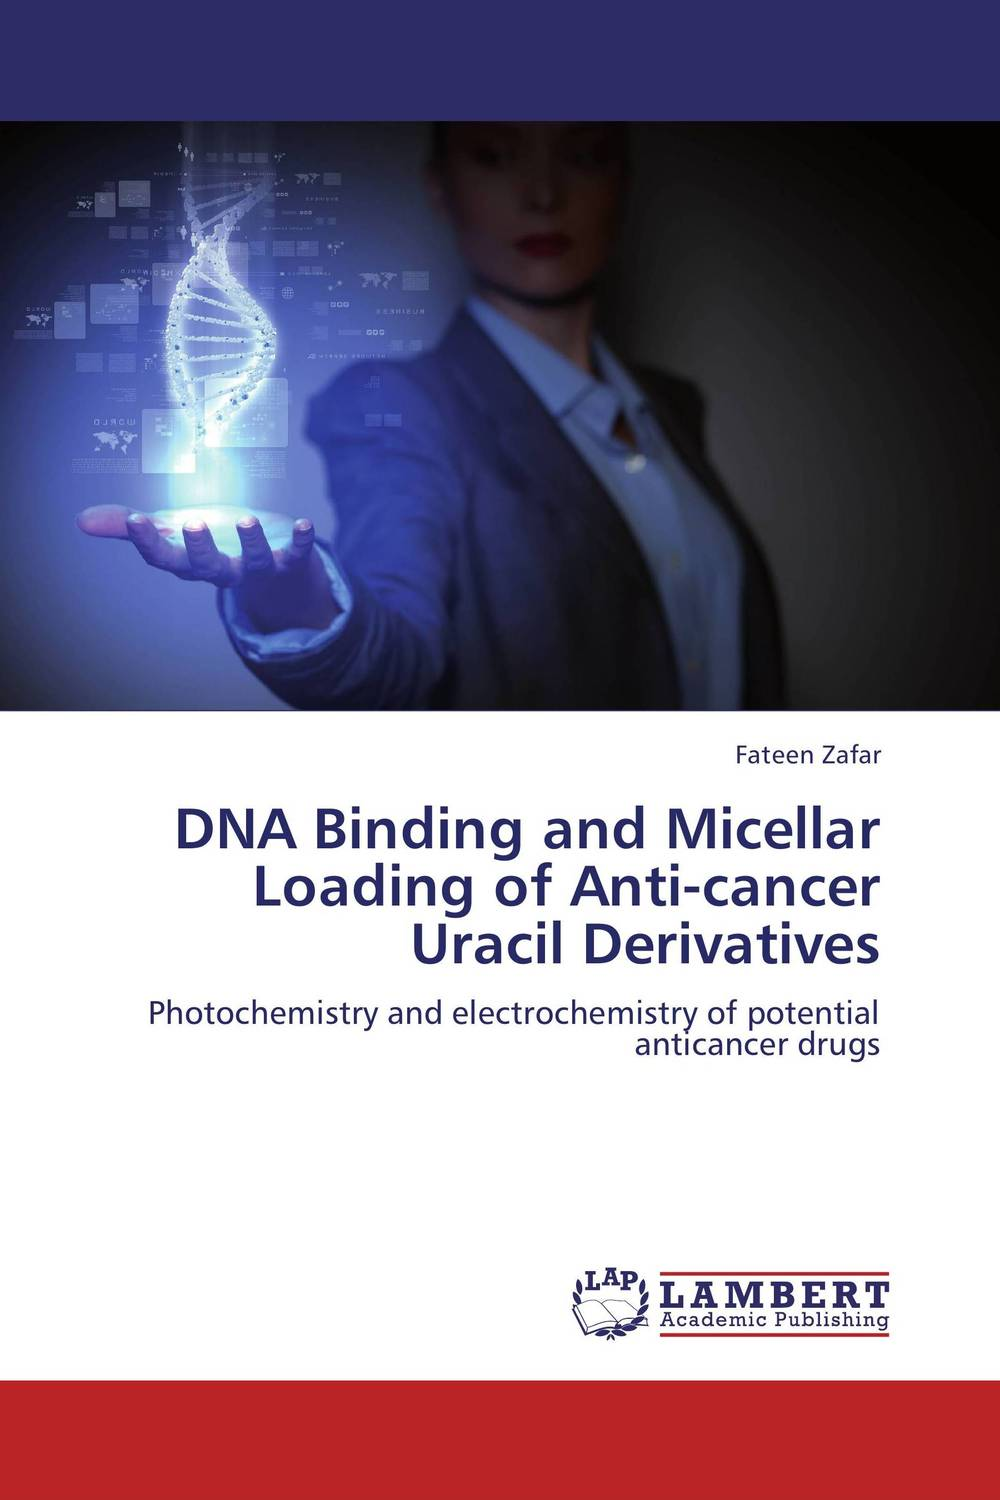 DNA Binding and Micellar Loading of Anti-cancer Uracil Derivatives modified pnas synthesis and interaction studies with dna